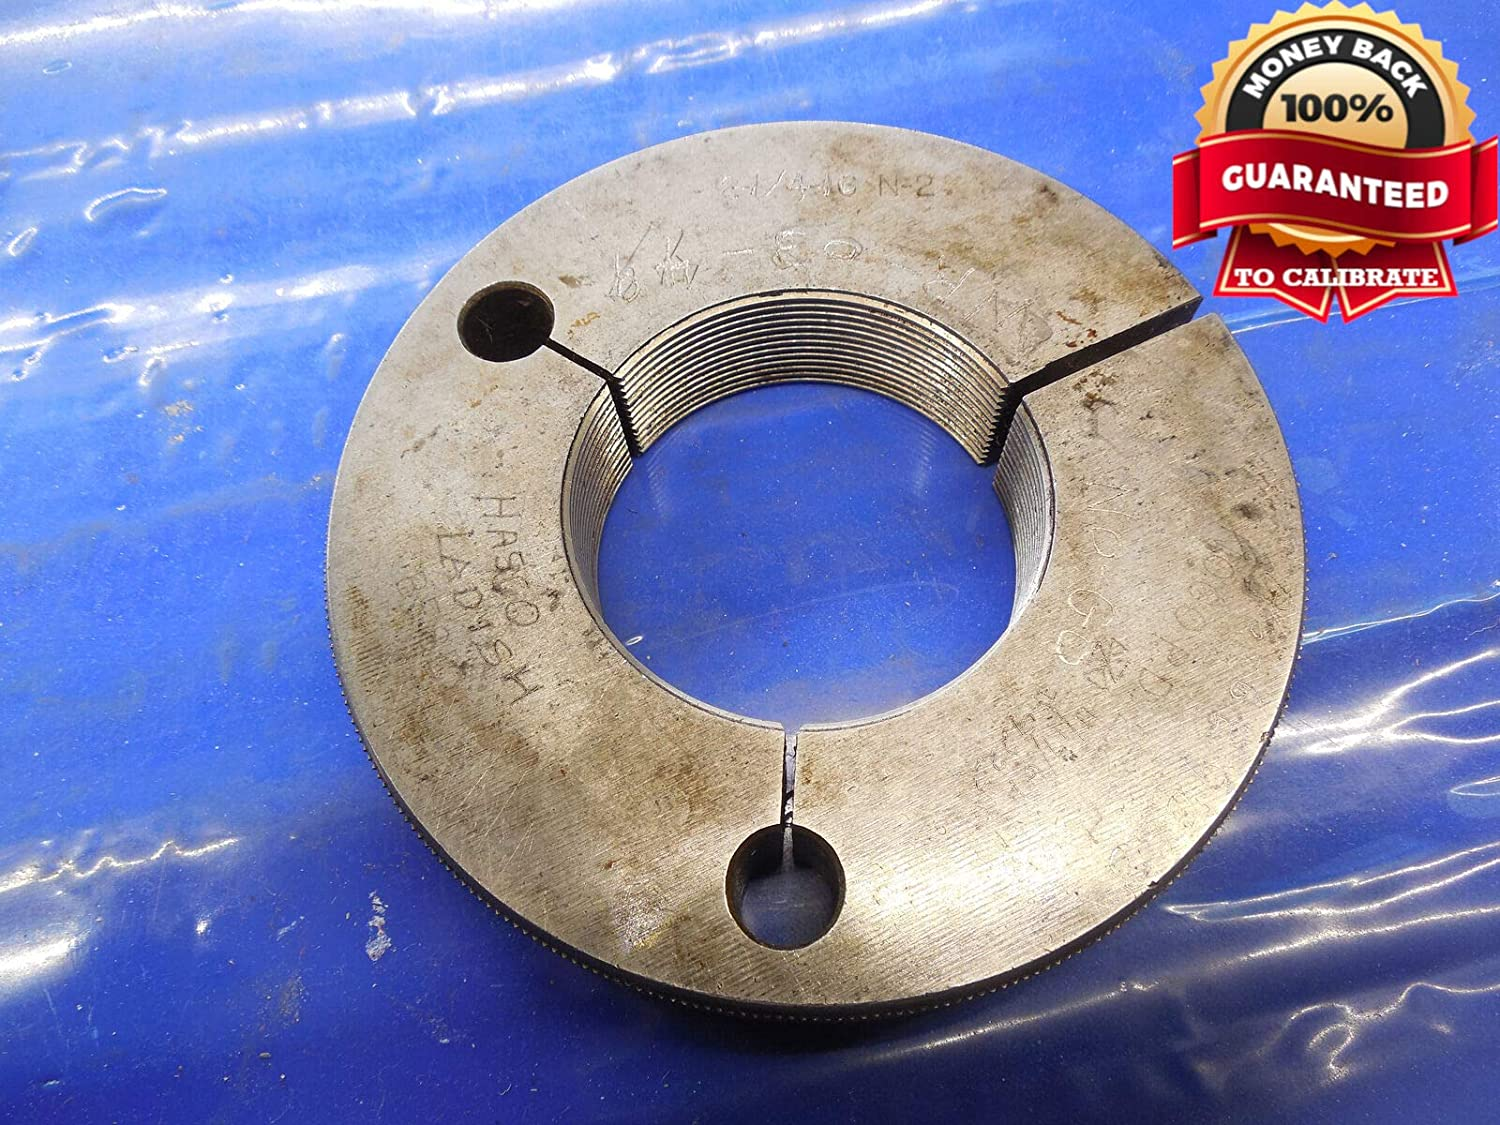 2 1/4 16 N 2 Thread Ring GAGE 2.25 NO GO ONLY P.D. = 2.2032 2 1/4-16 N-2 Tool